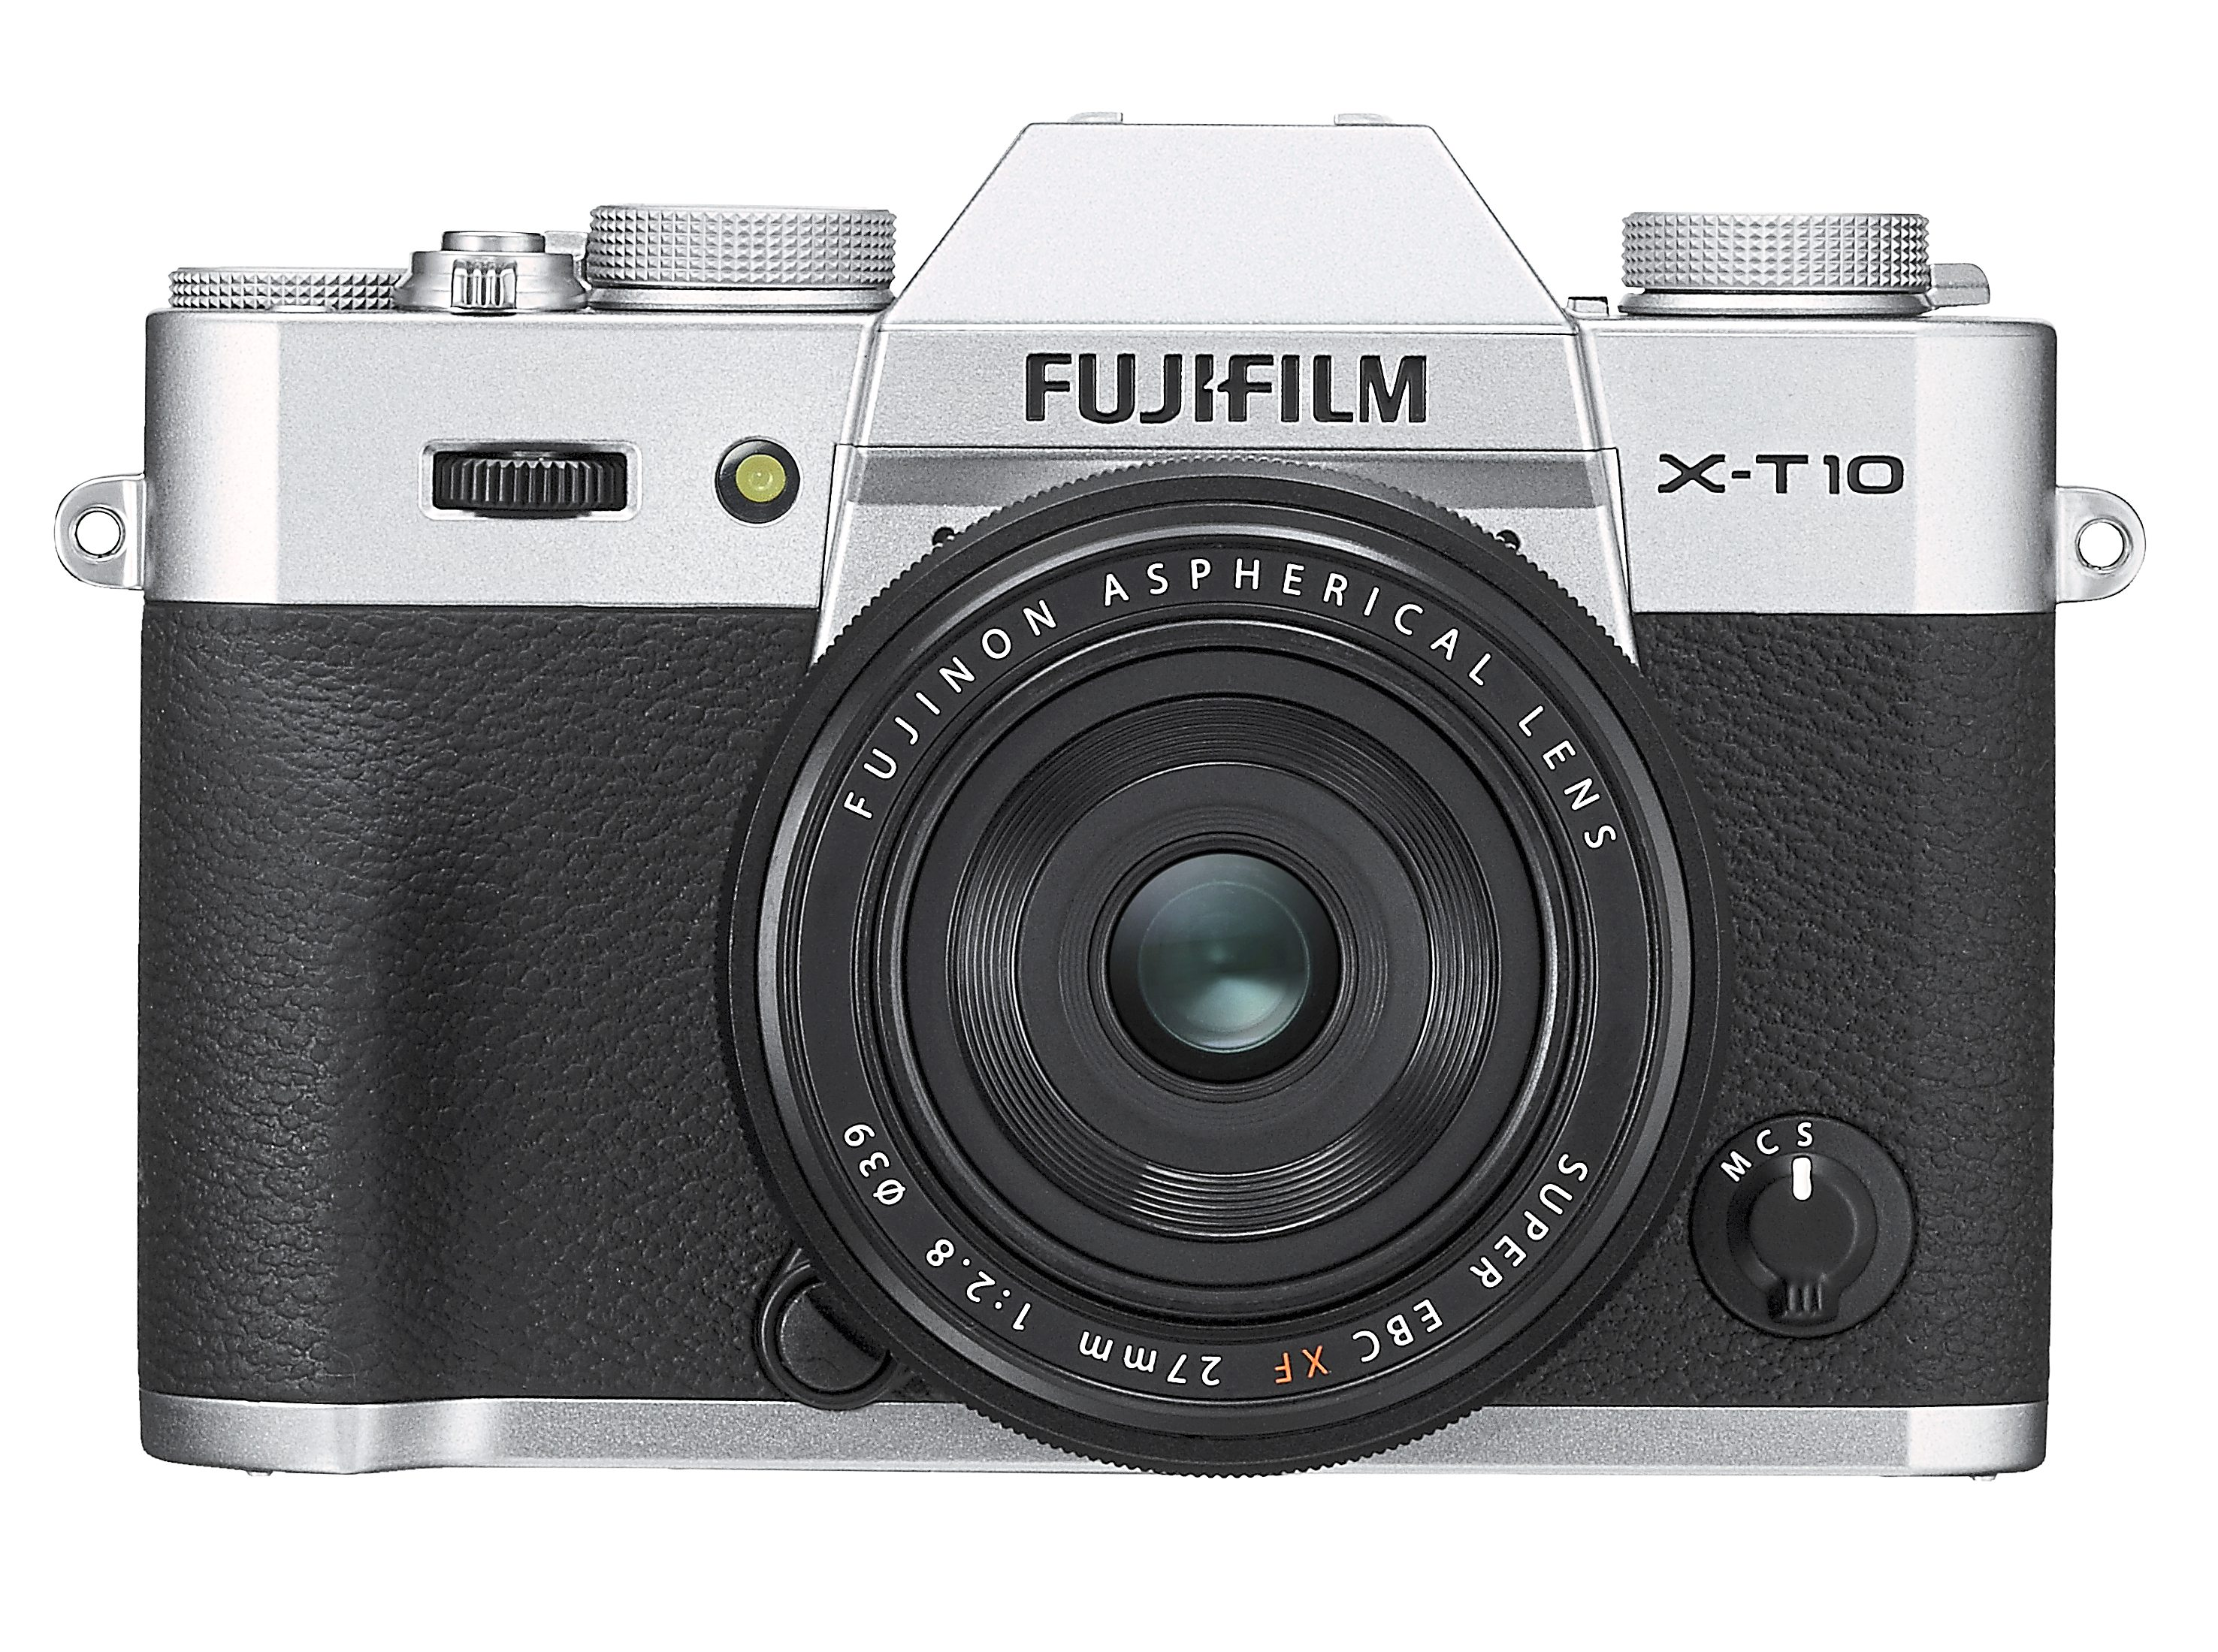 Retro design: the Fuji X-T10 would look right at home with your classic leather luggage.